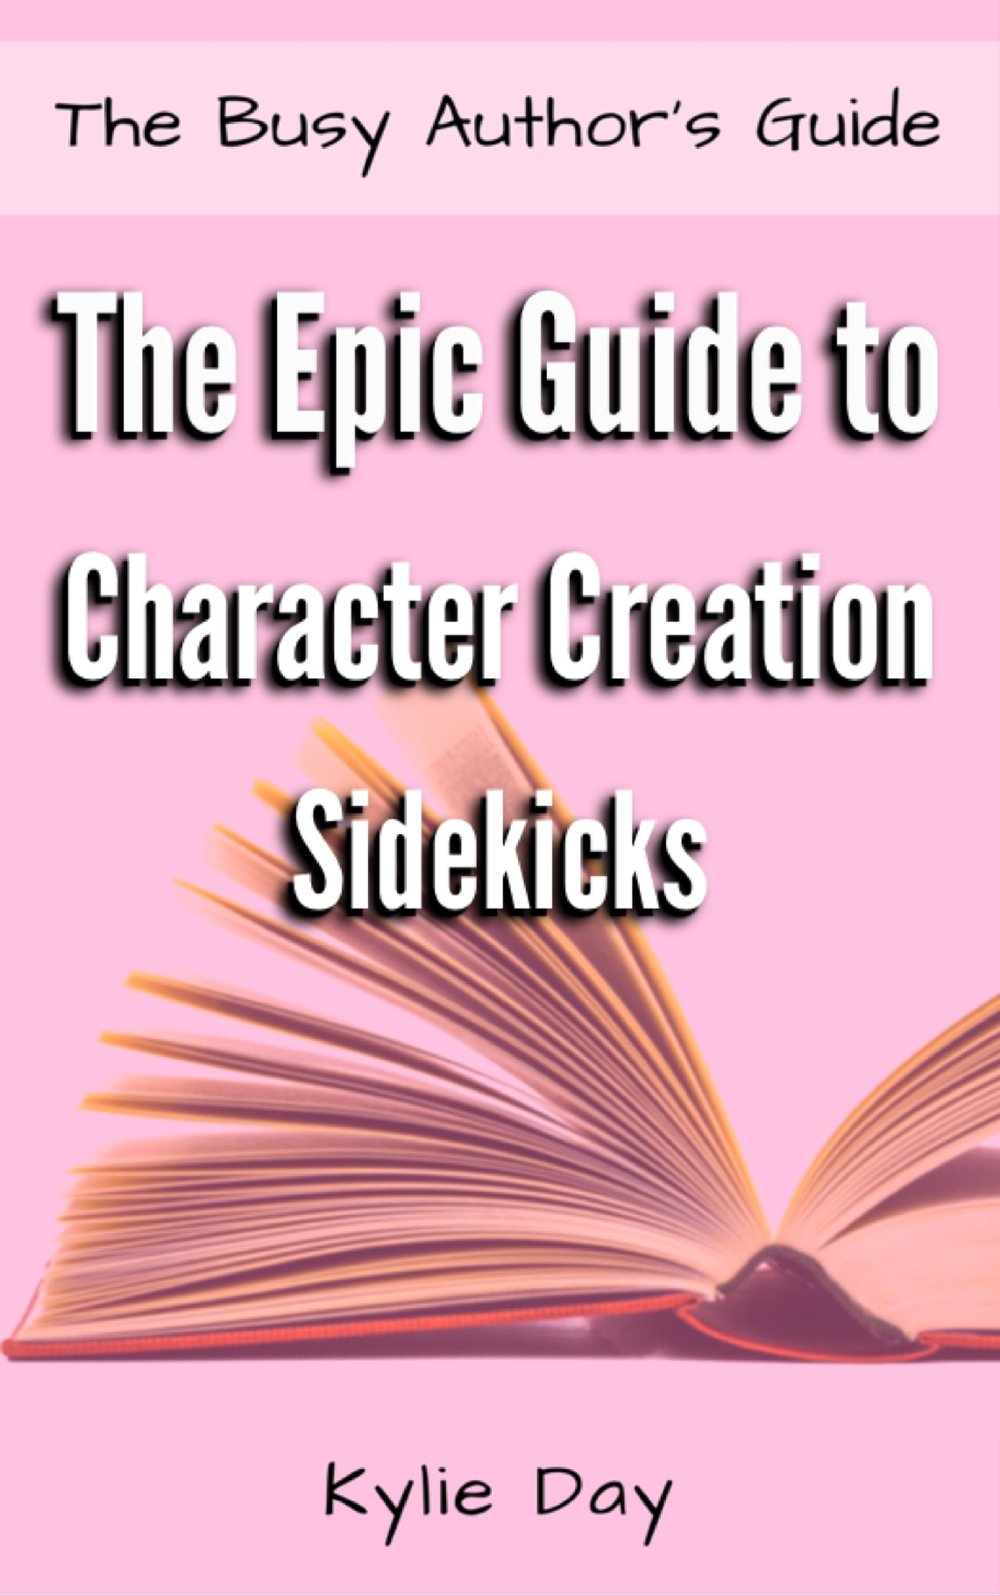 THE EPIC GUIDE TO CHARACTER CREATION: SIDEKICKS